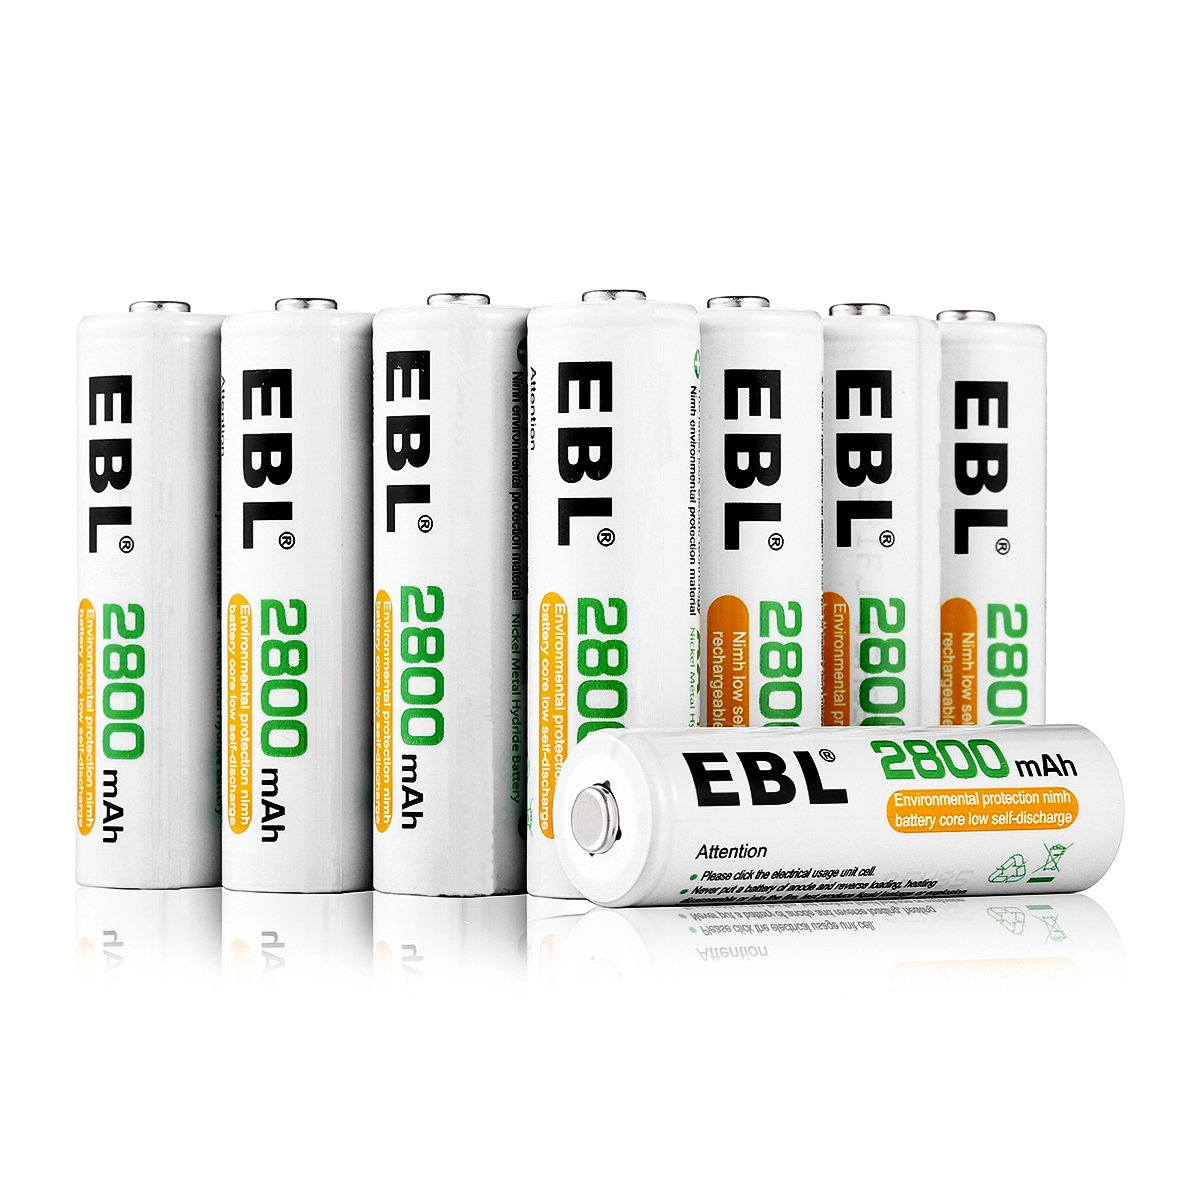 EBL AA Rechargeable Batteries 2800mAh Ready2Charge UL Certified Quality AA Batteries - 16 Counts